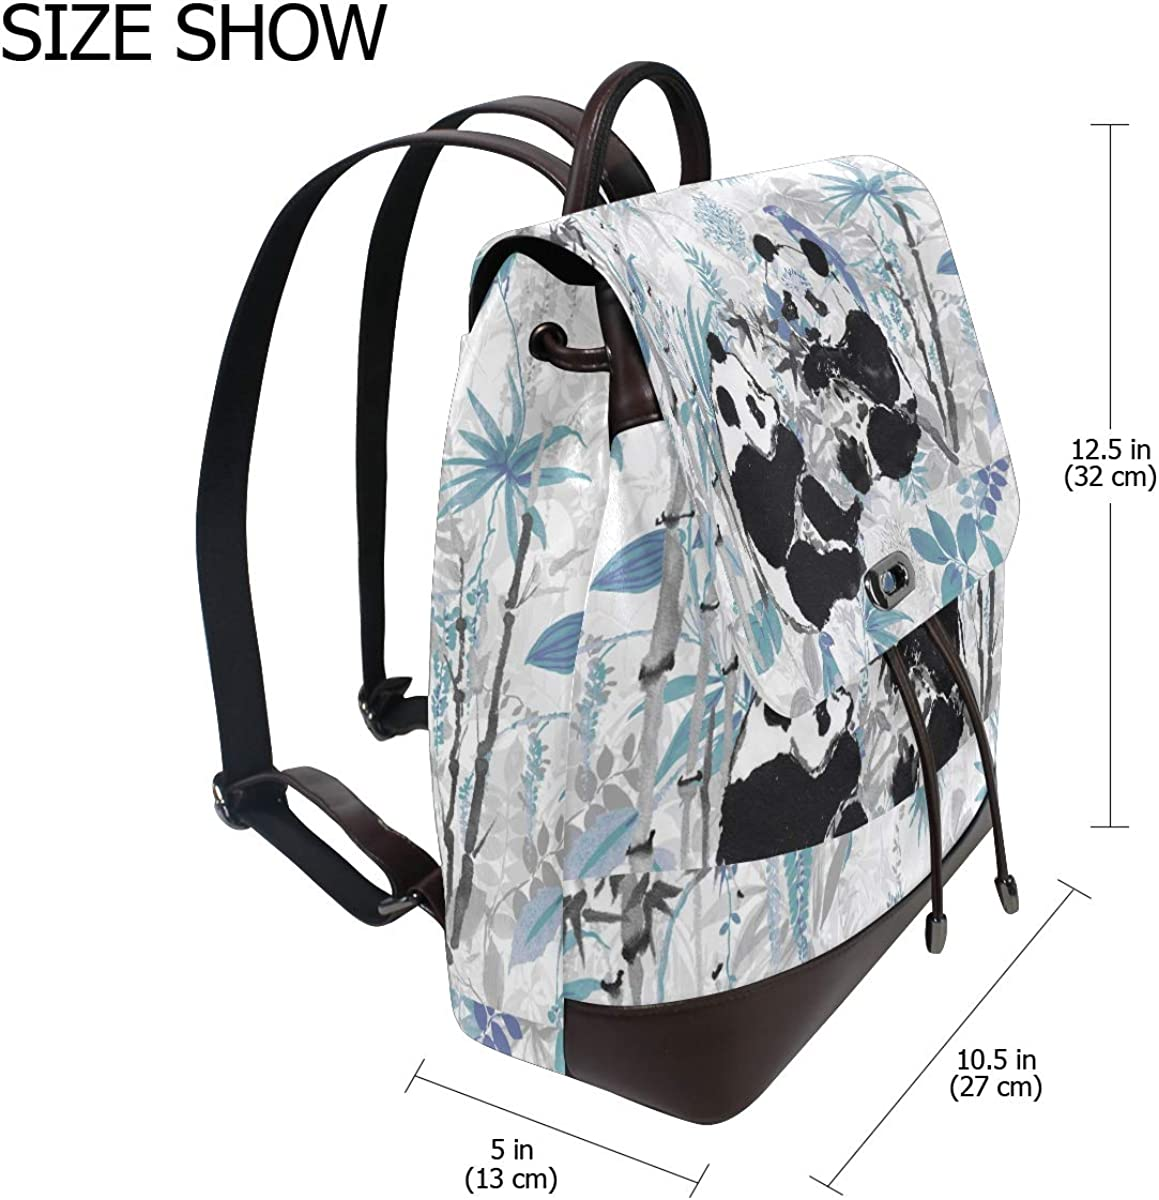 PU Leather Shoulder Bag,Bamboo And Pandas Backpack,Portable Travel School Rucksack,Satchel with Top Handle